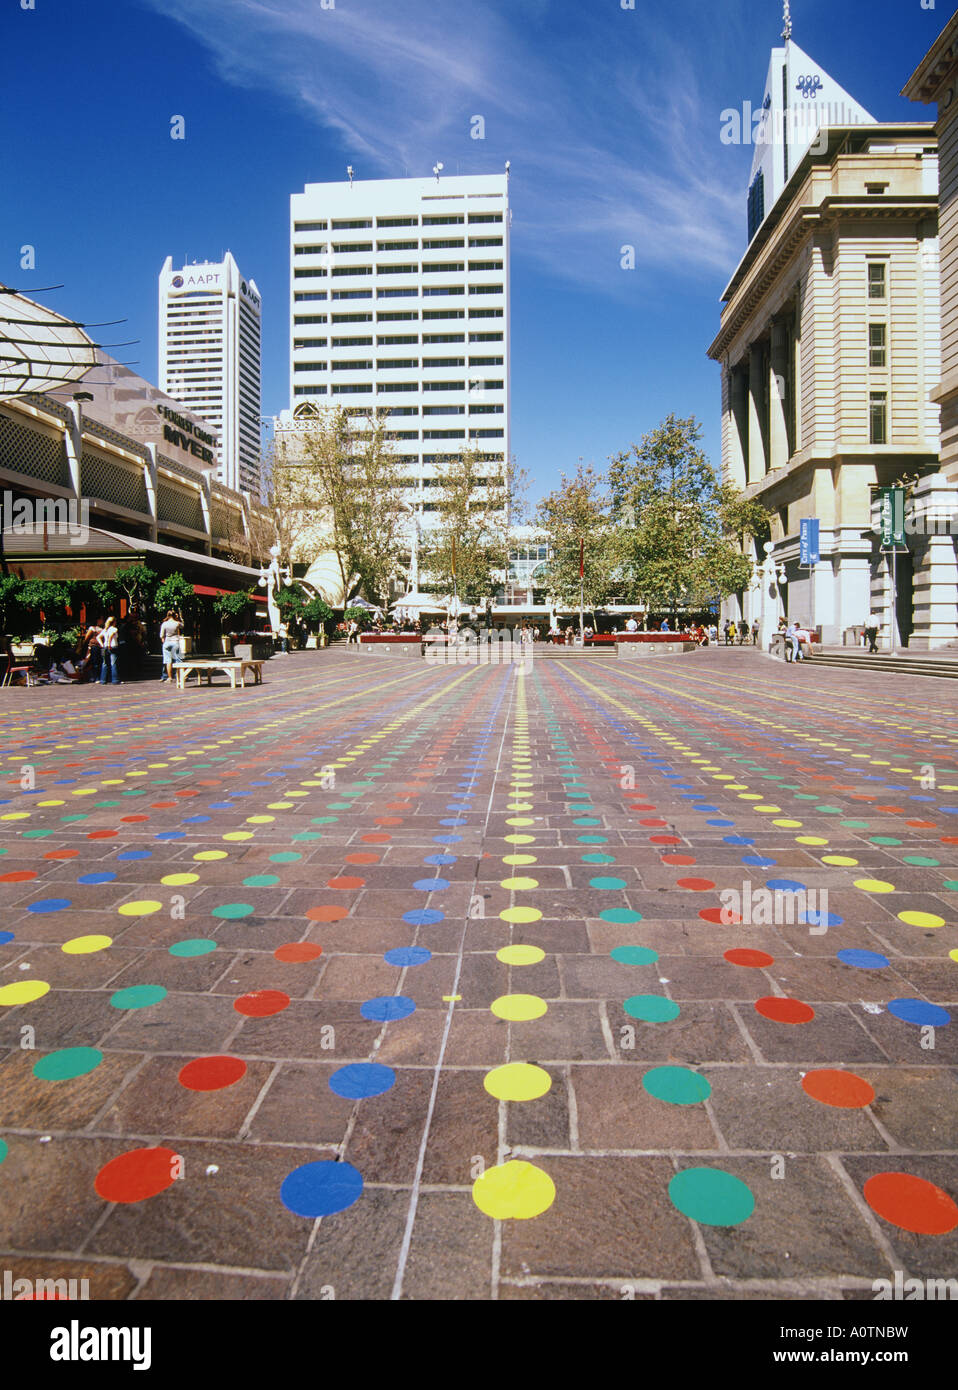 Forrest Place - Stock Image